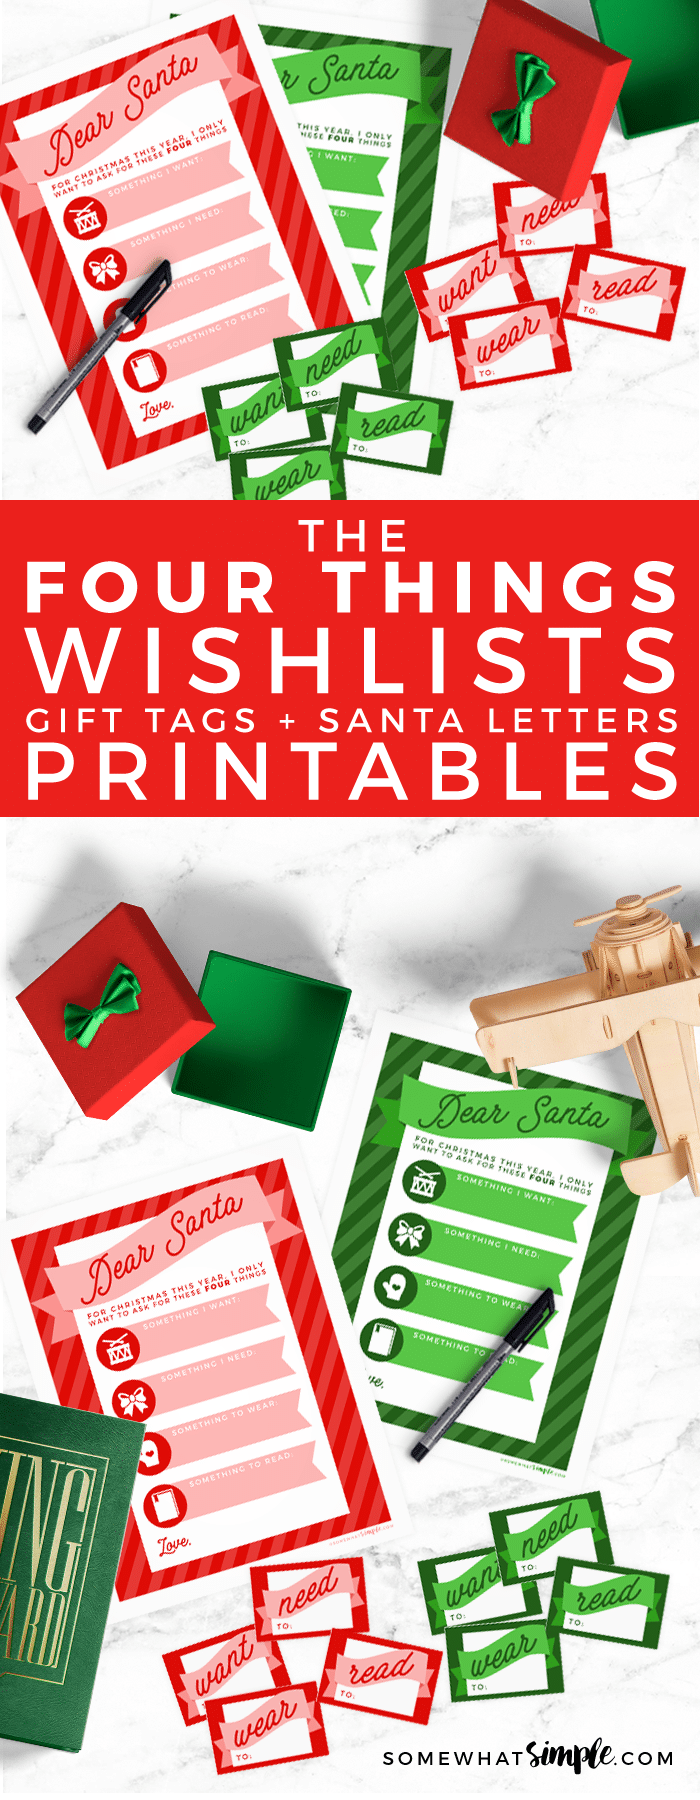 FREE Christmas Wish List, Santa Letters and Gift Tag Printables